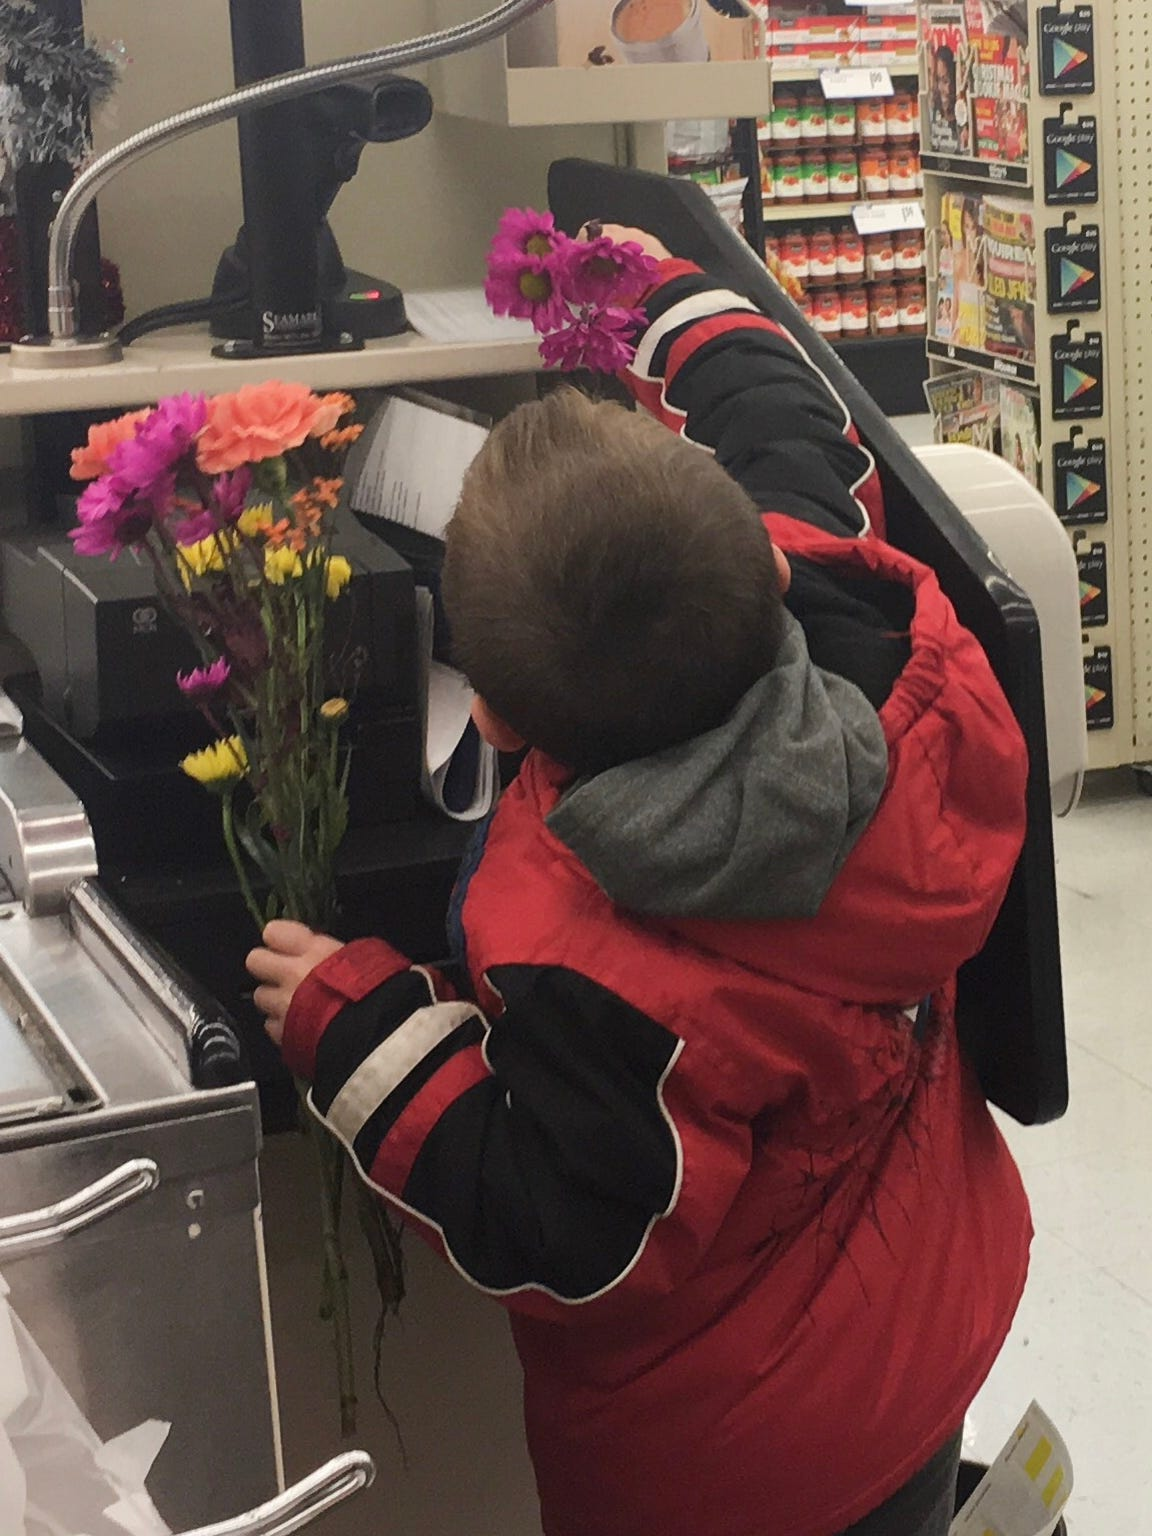 Connor Brindle, 6, puts a flower on a cash register